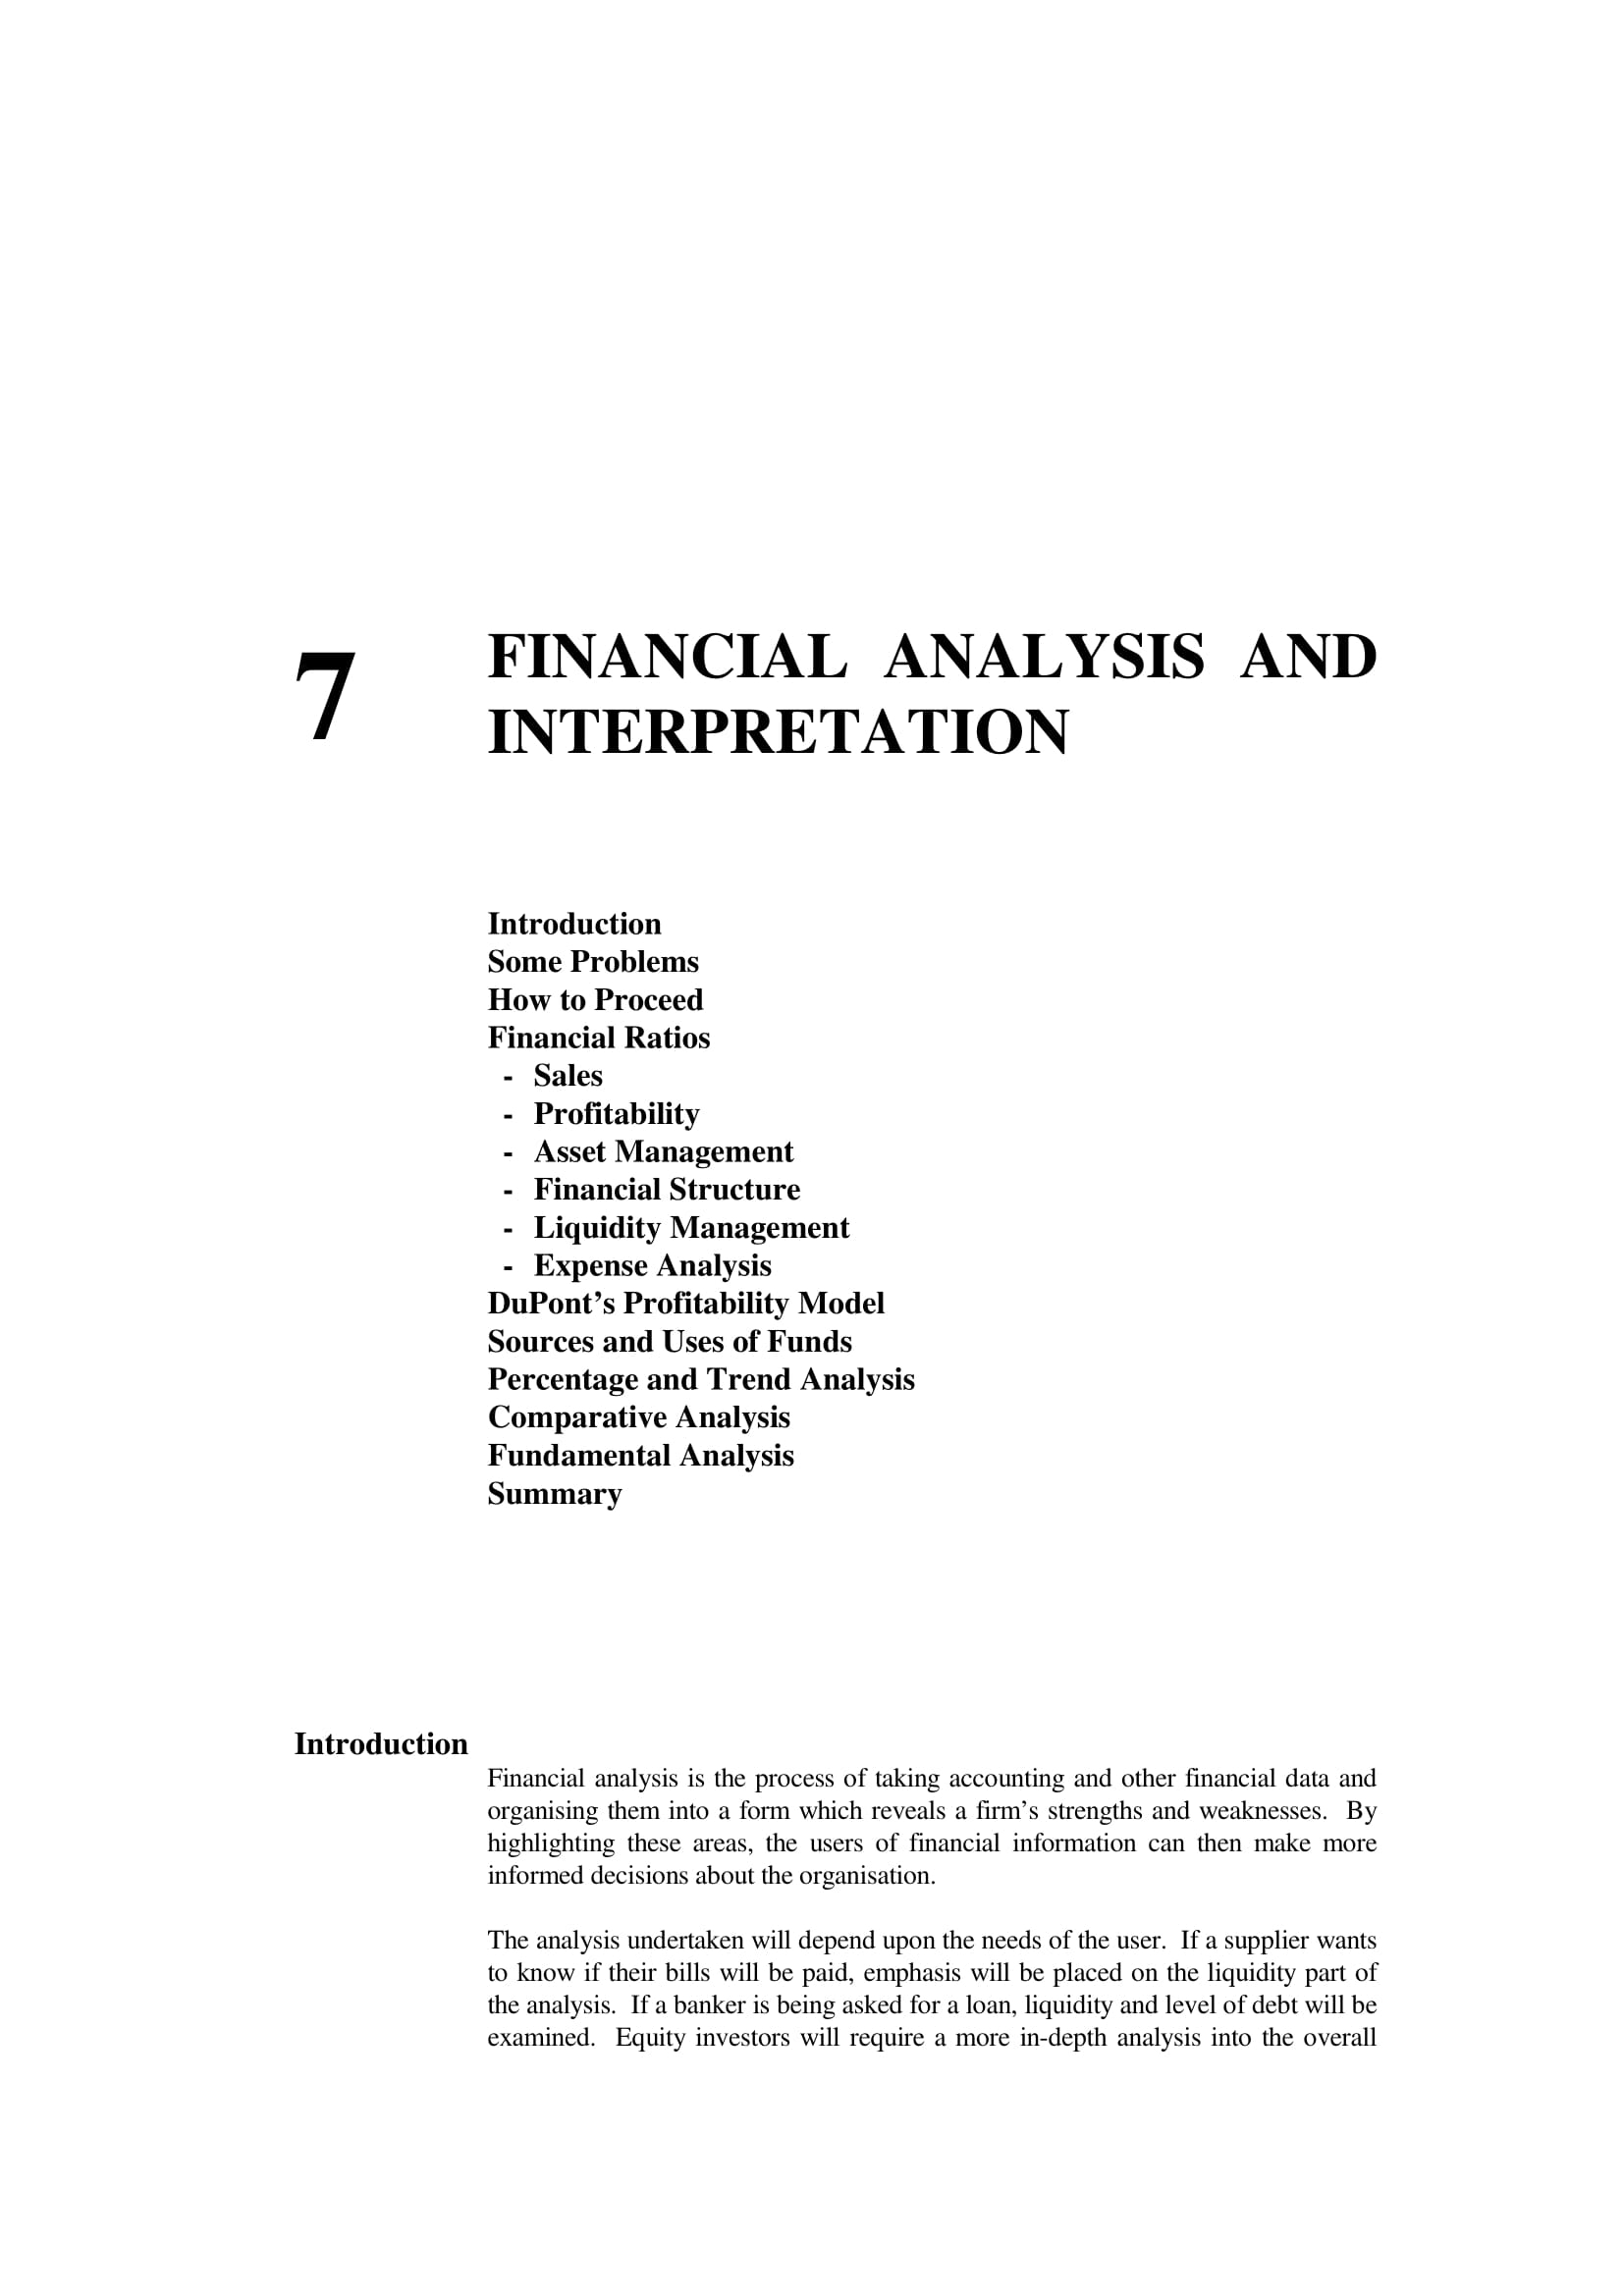 business financial analysis and interpretation example 01